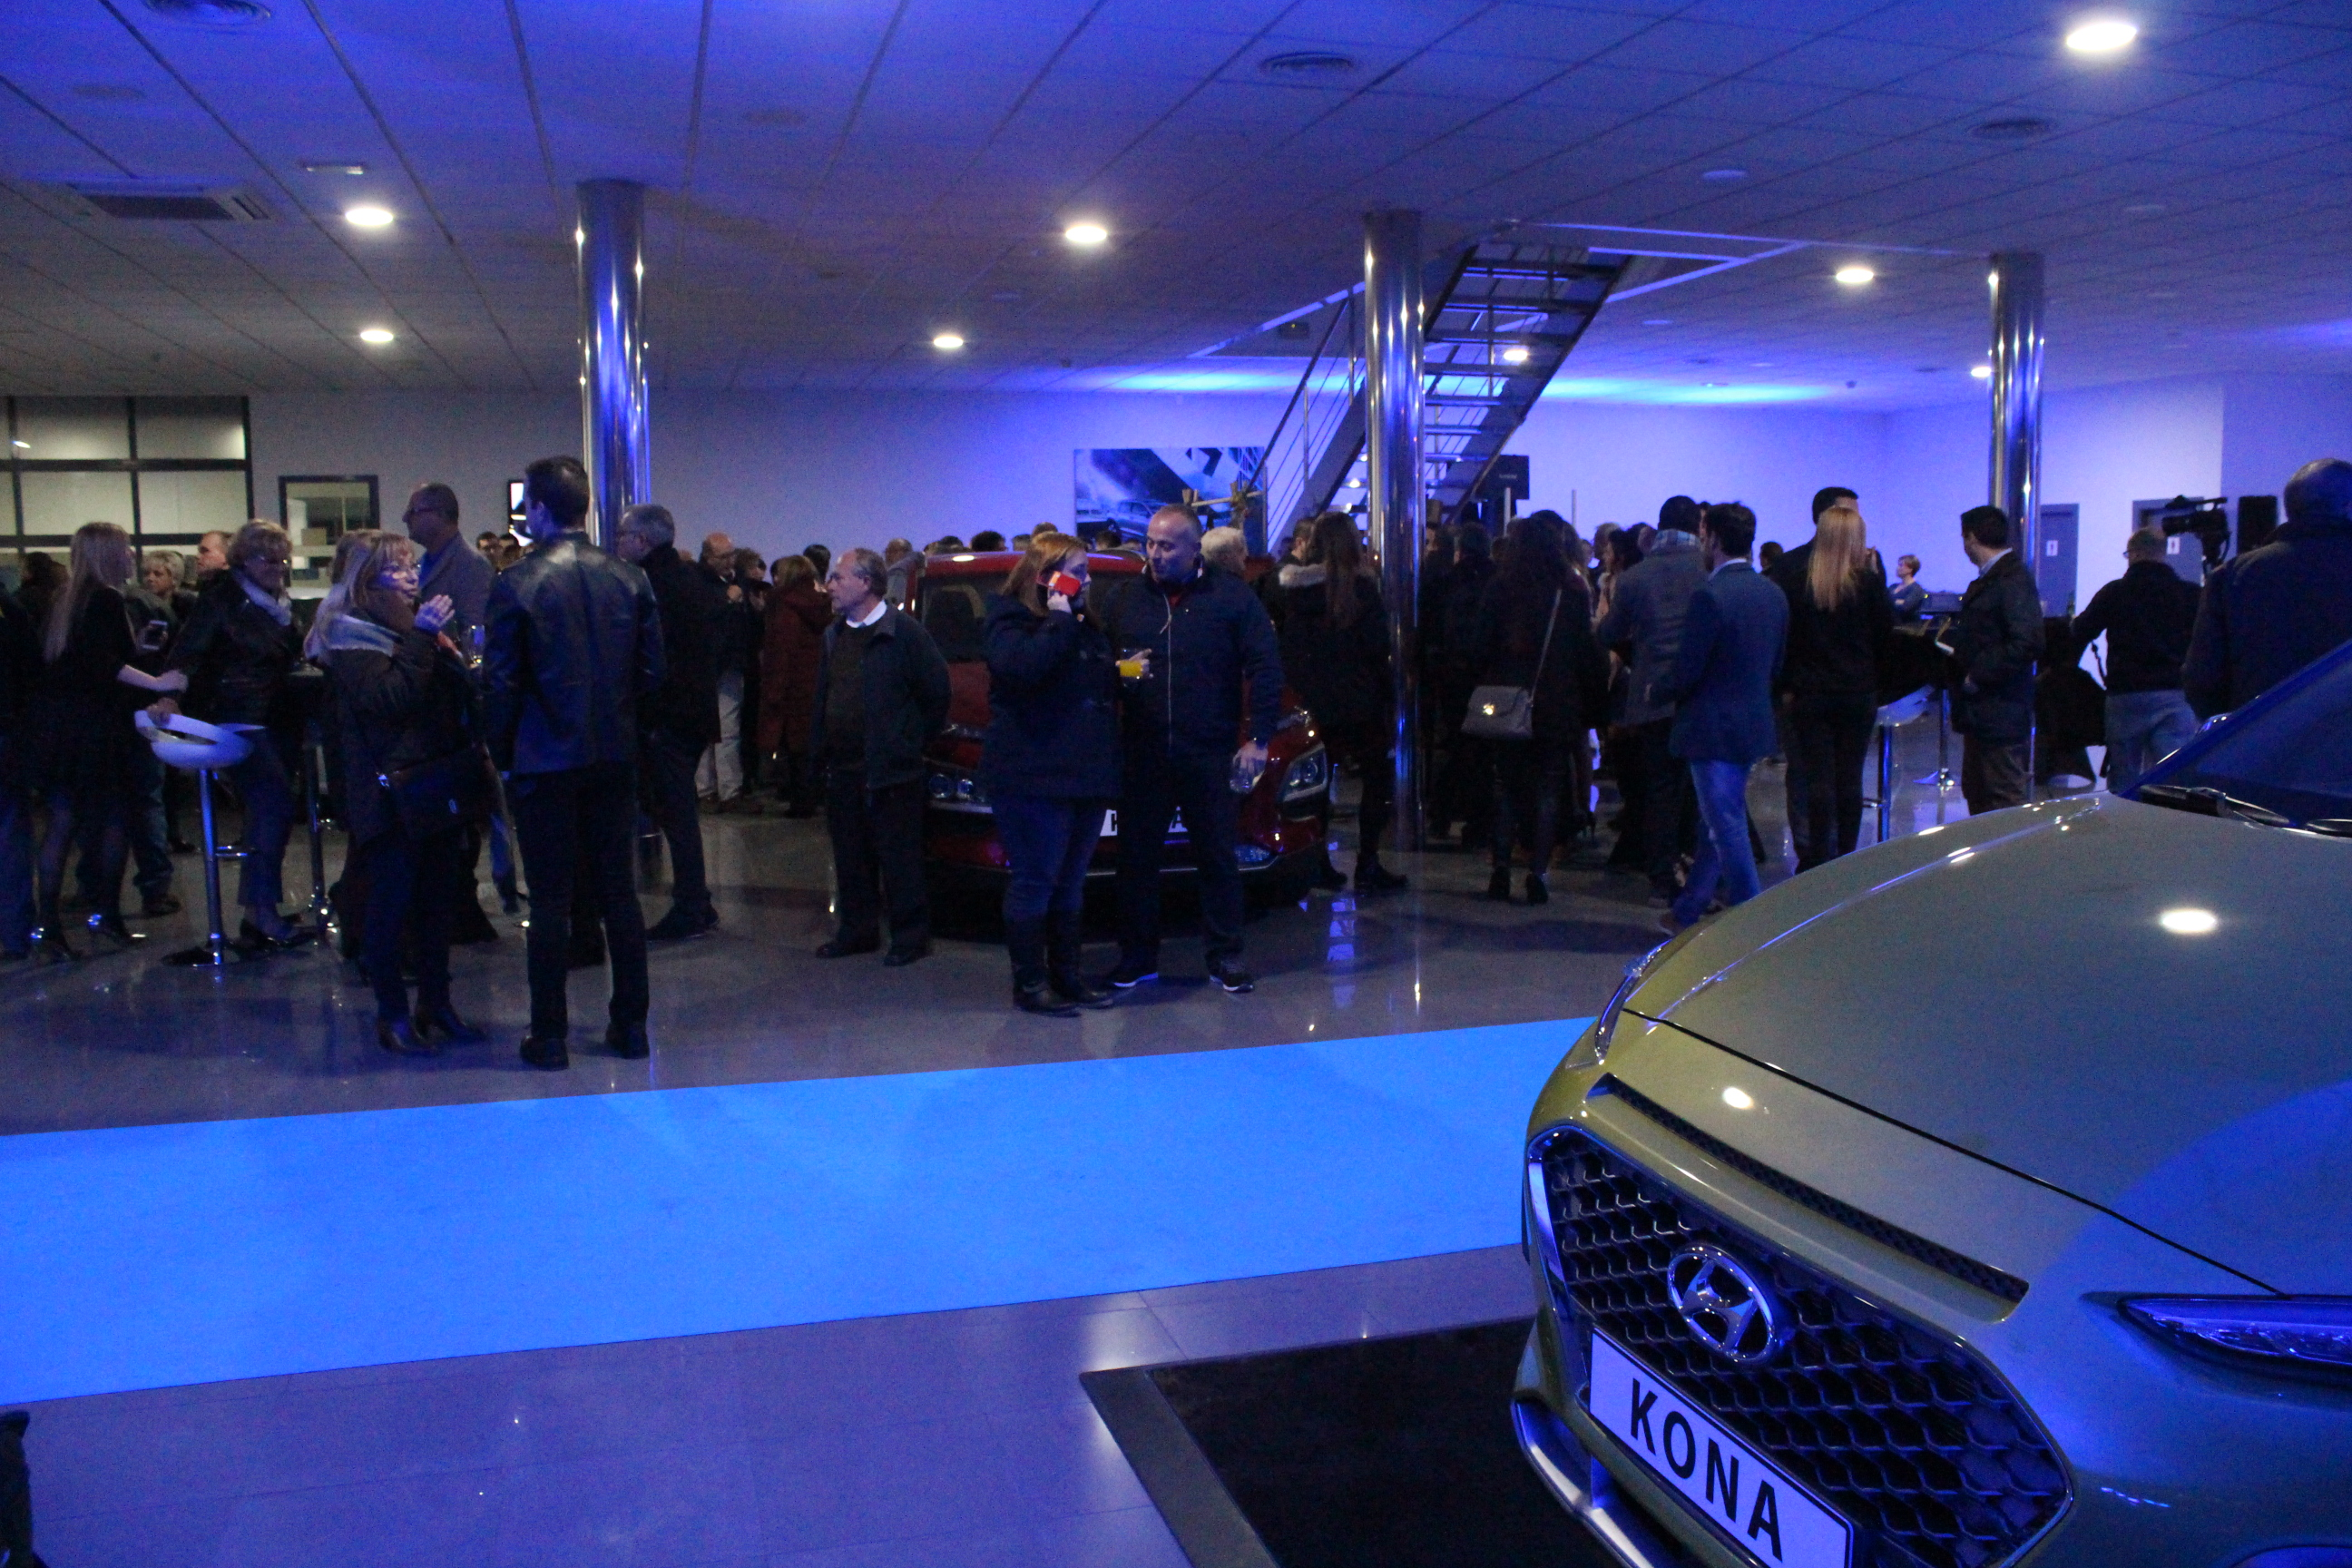 The launch of the all-new Hyundai Kona at Autofima Elche attracted more than 200 guests